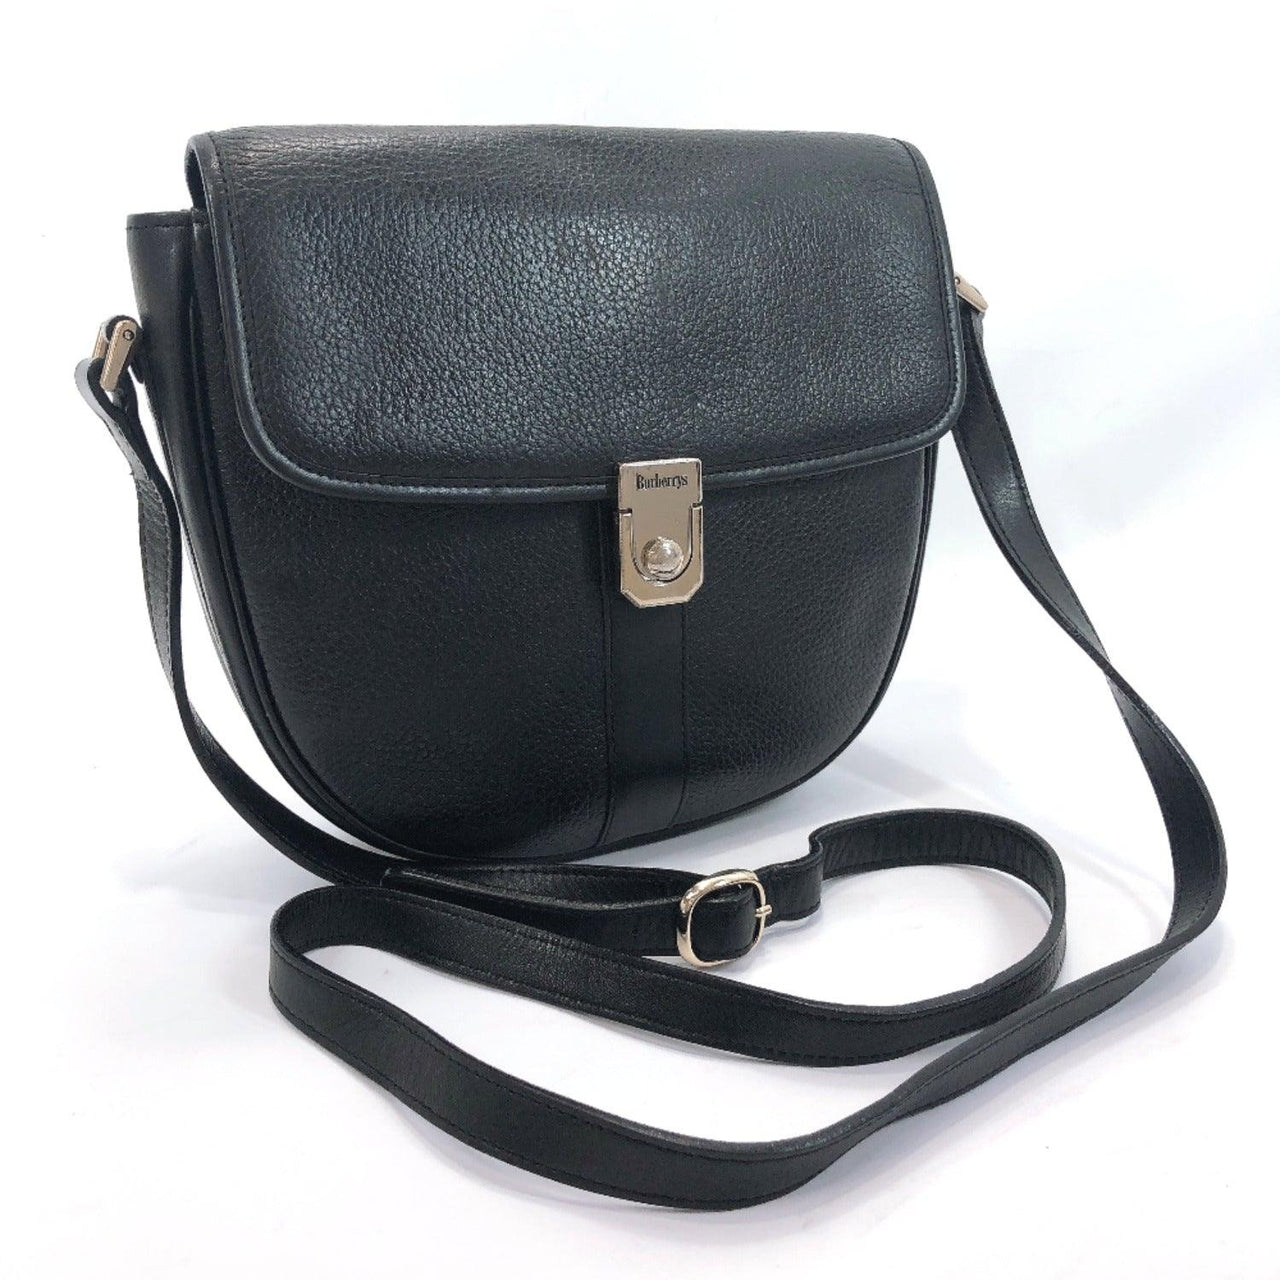 BURBERRY Shoulder Bag vintage leather black Women Used